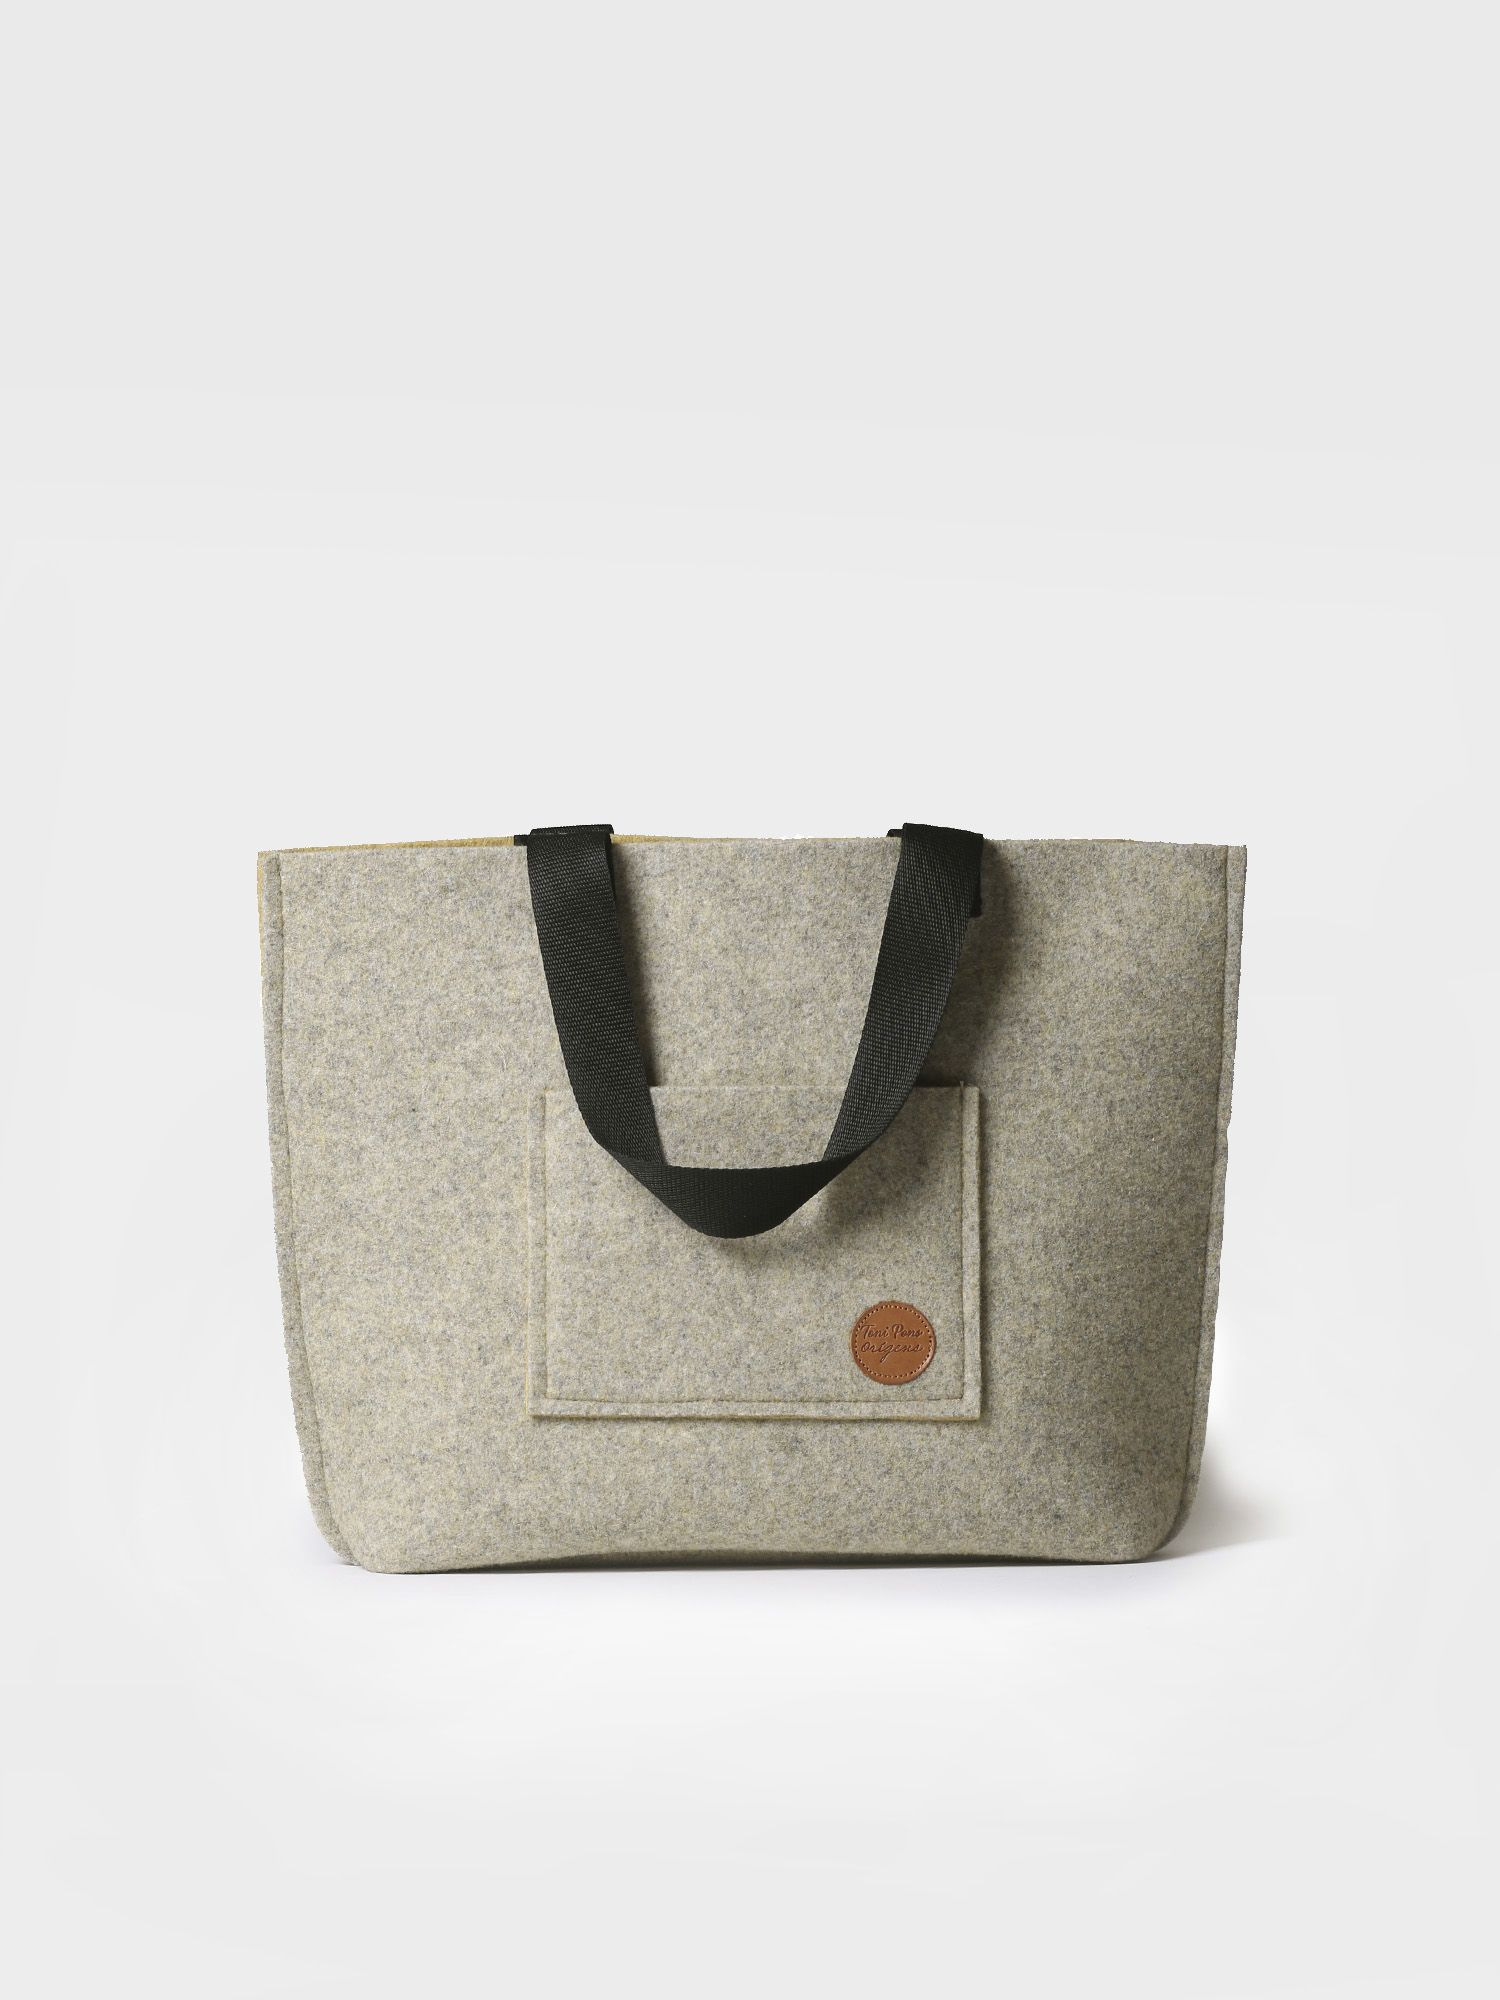 Bag for women made of felt - GINA-CD